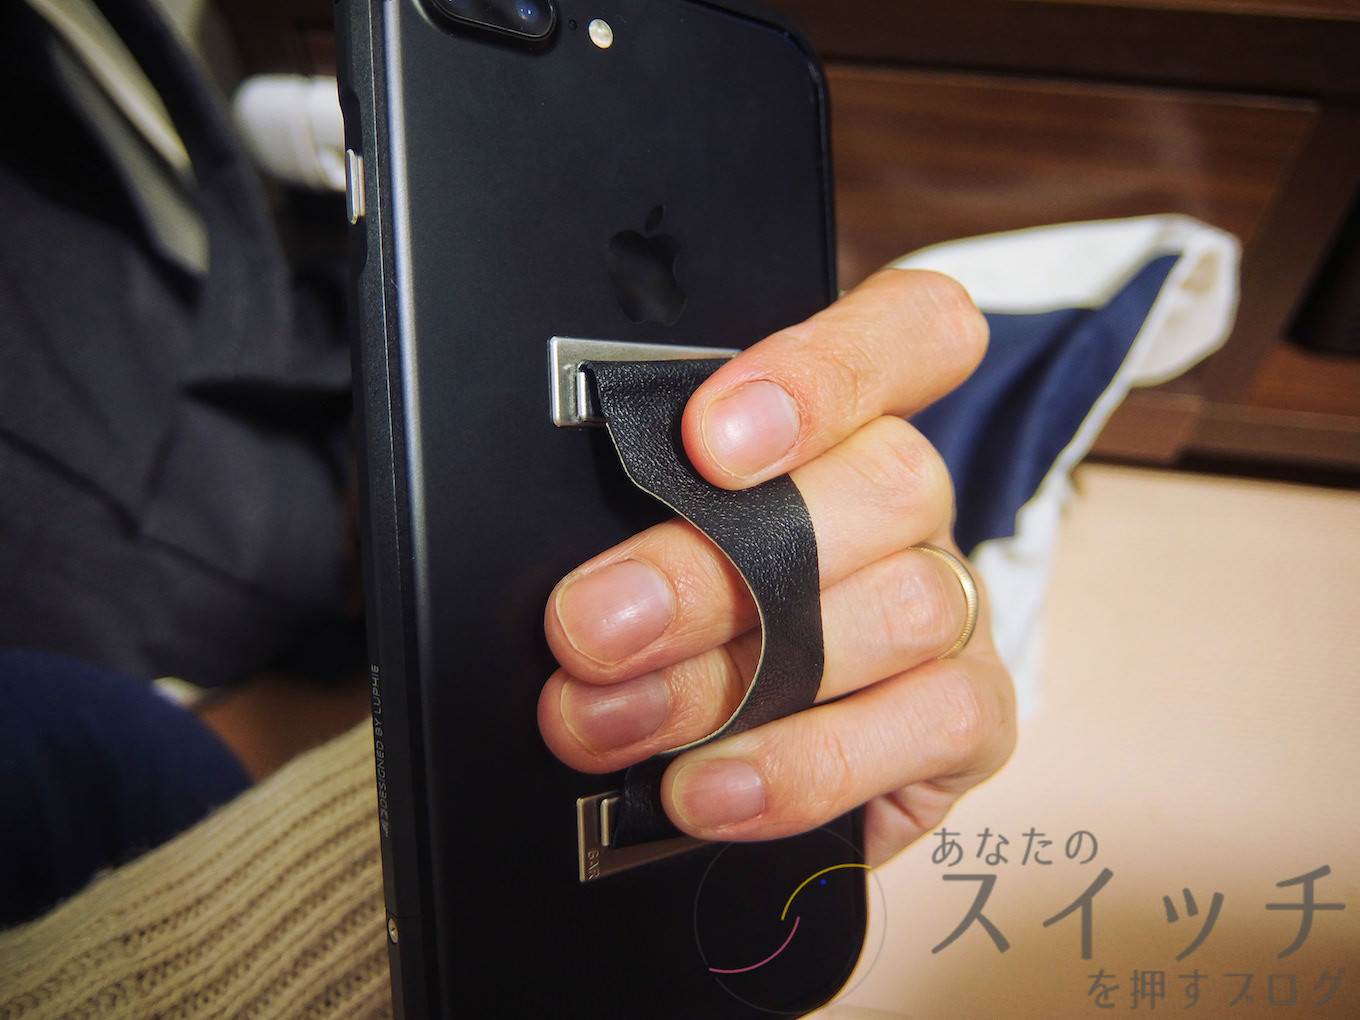 Iphone zettai guard 1